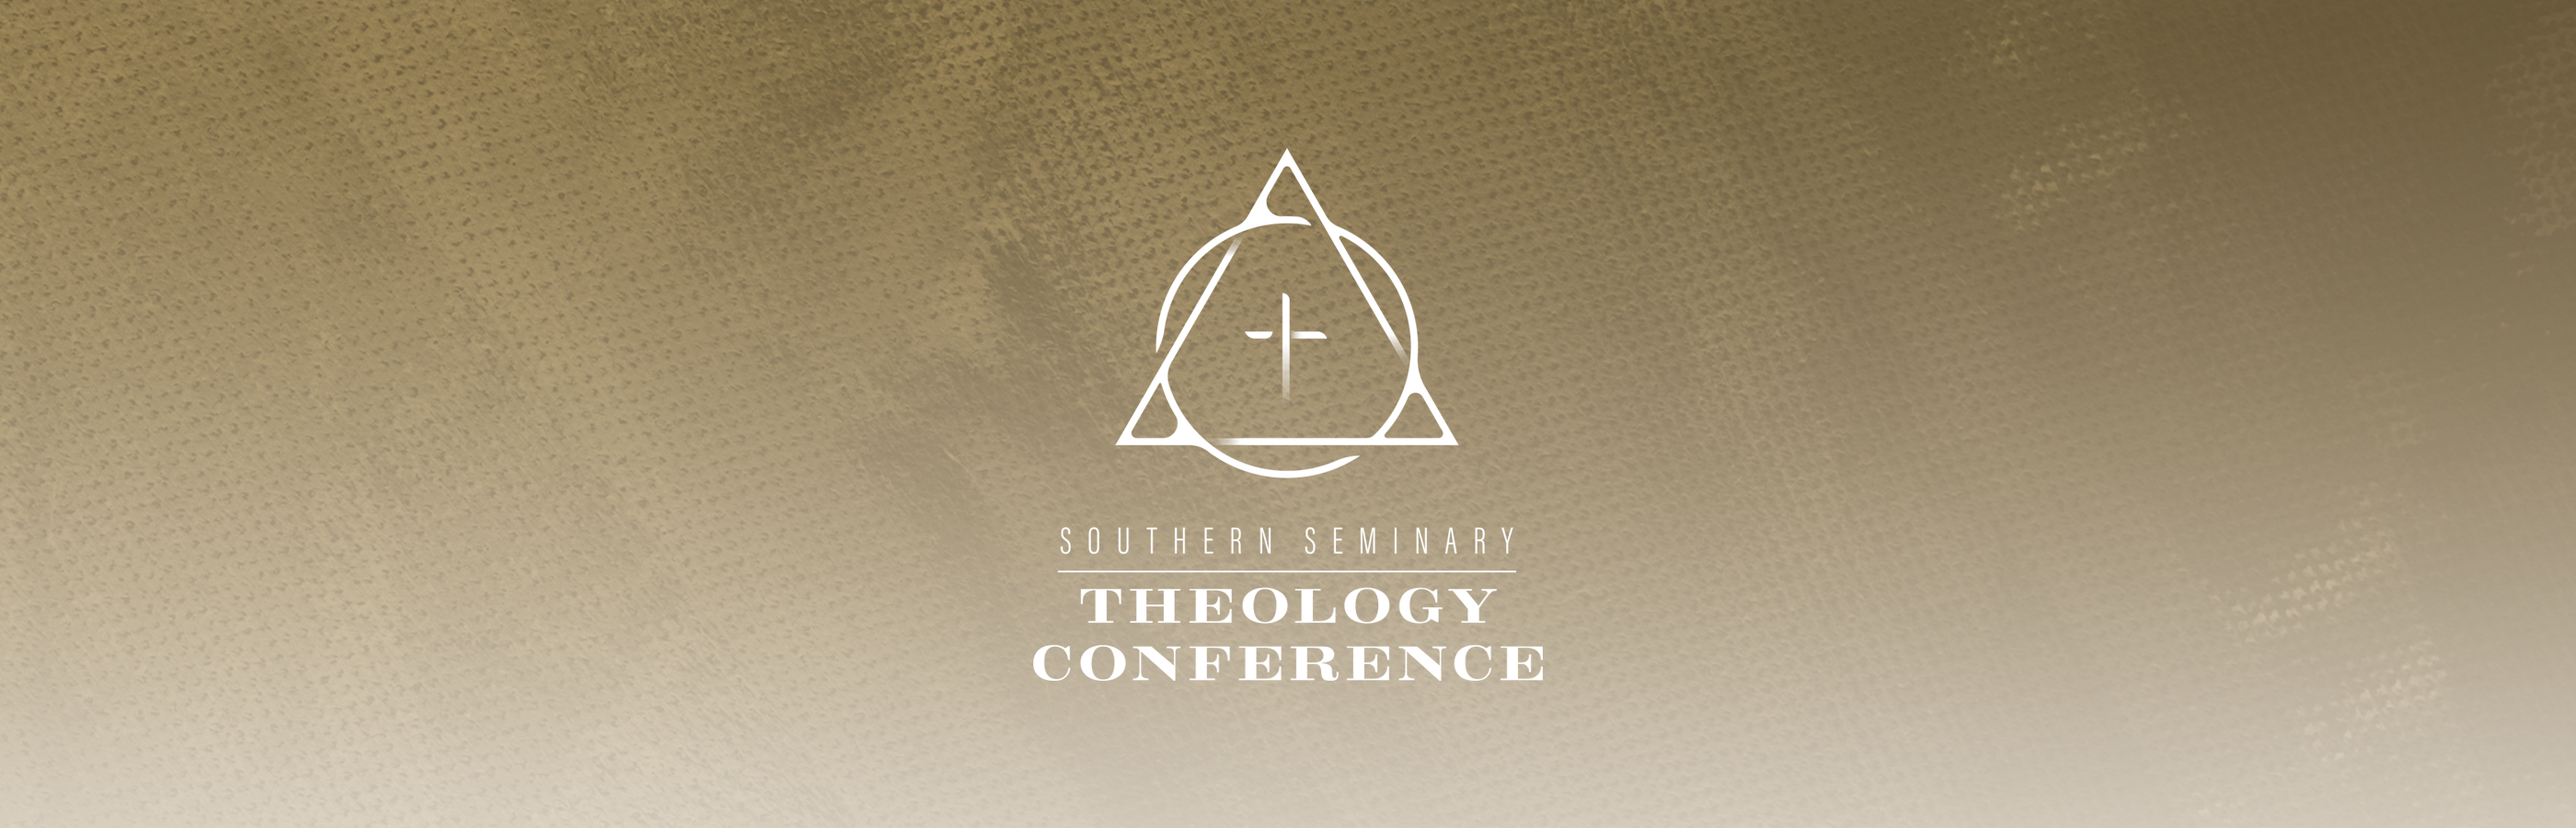 Banner advertisement for Theology Conference